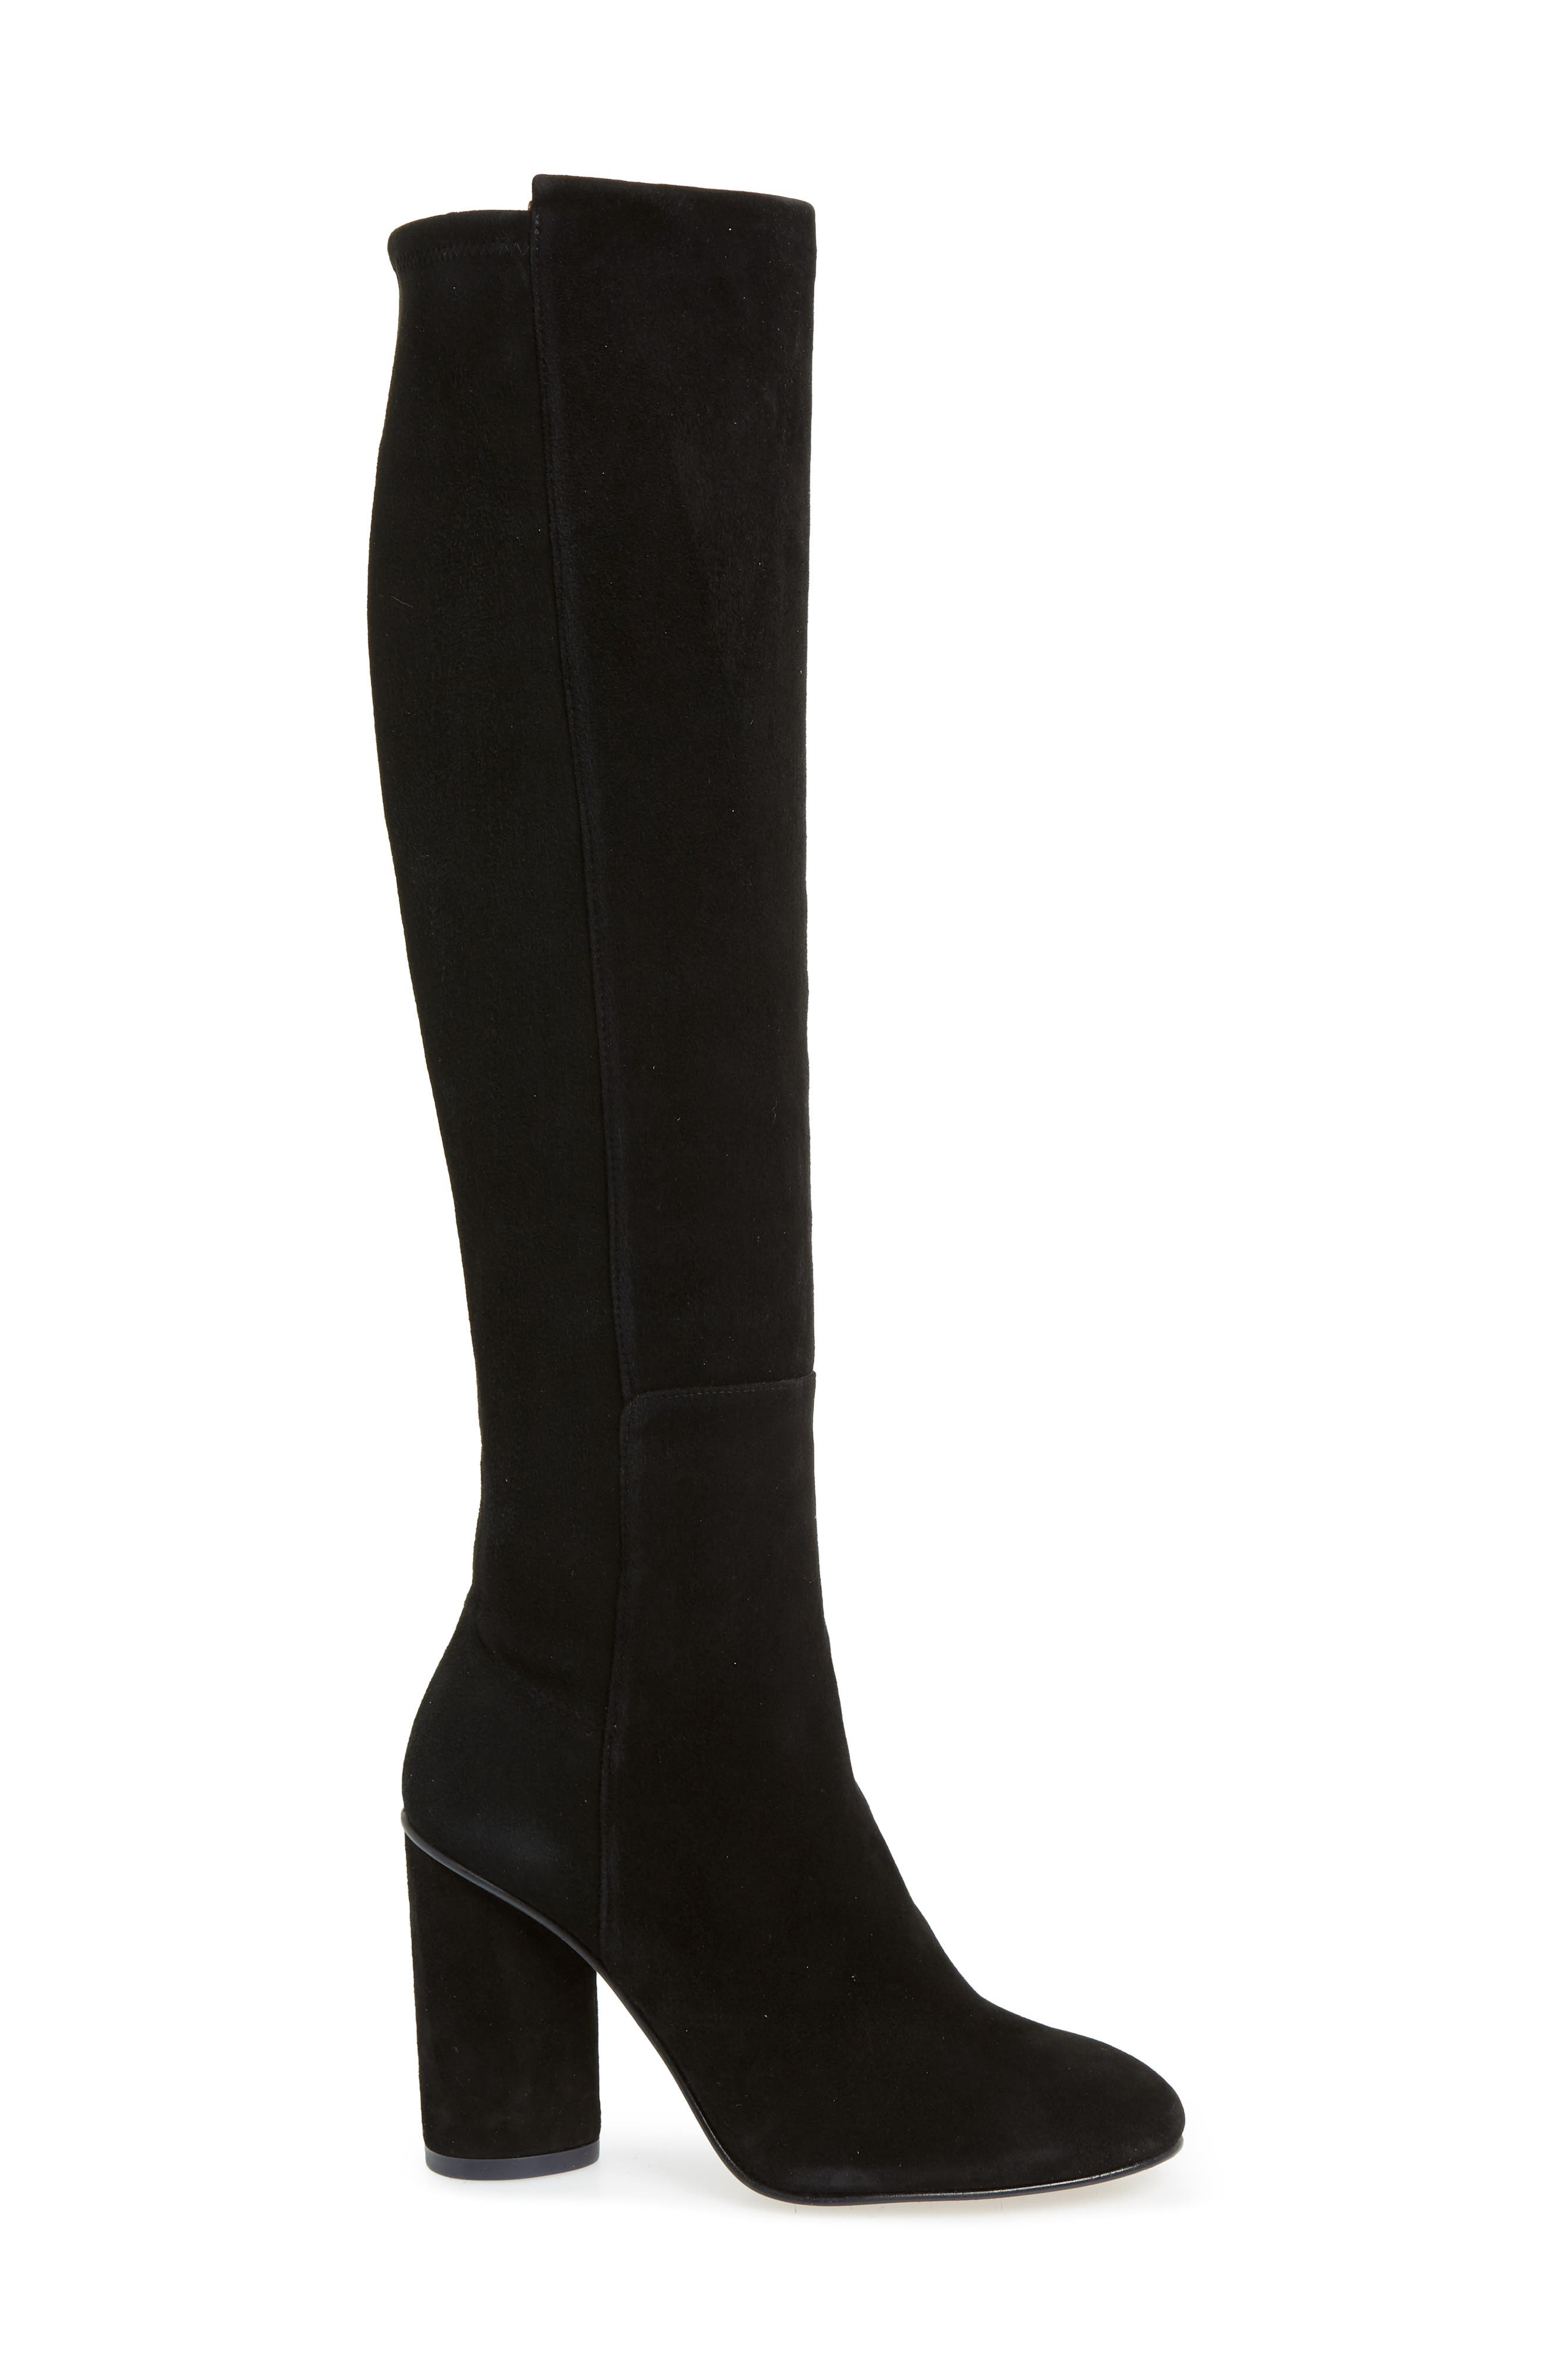 Eloise Over the Knee Boot,                             Alternate thumbnail 3, color,                             BLACK SUEDE